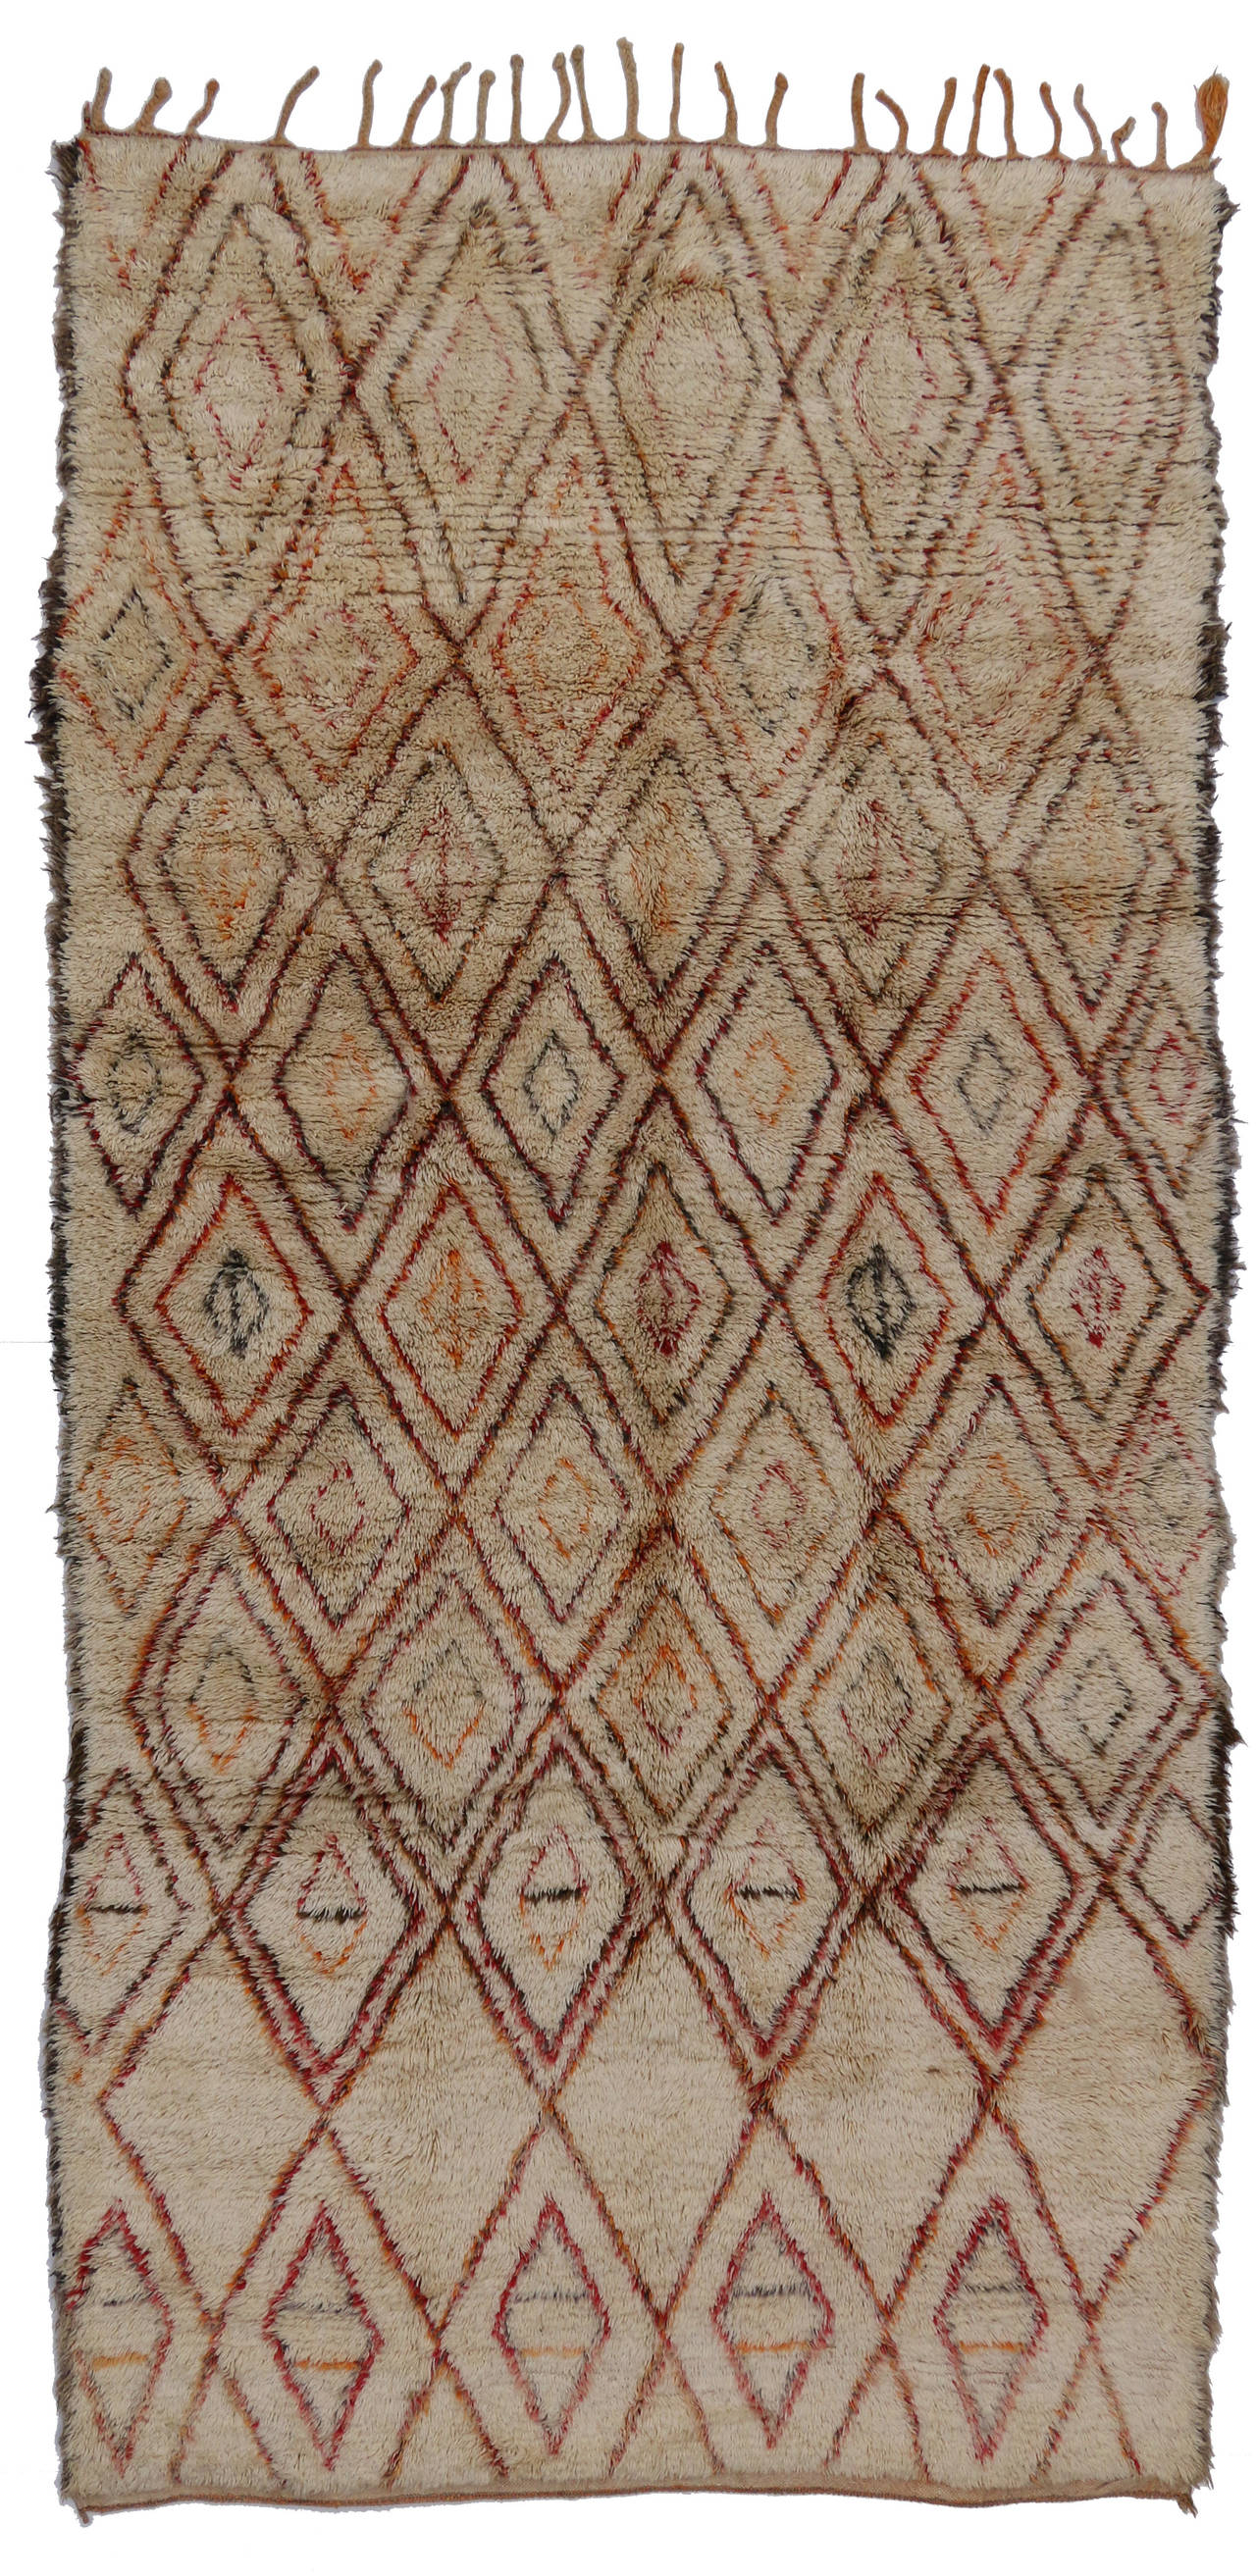 Mid-Century Modern Beni Ourain Moroccan Rug with Tribal Designs 3